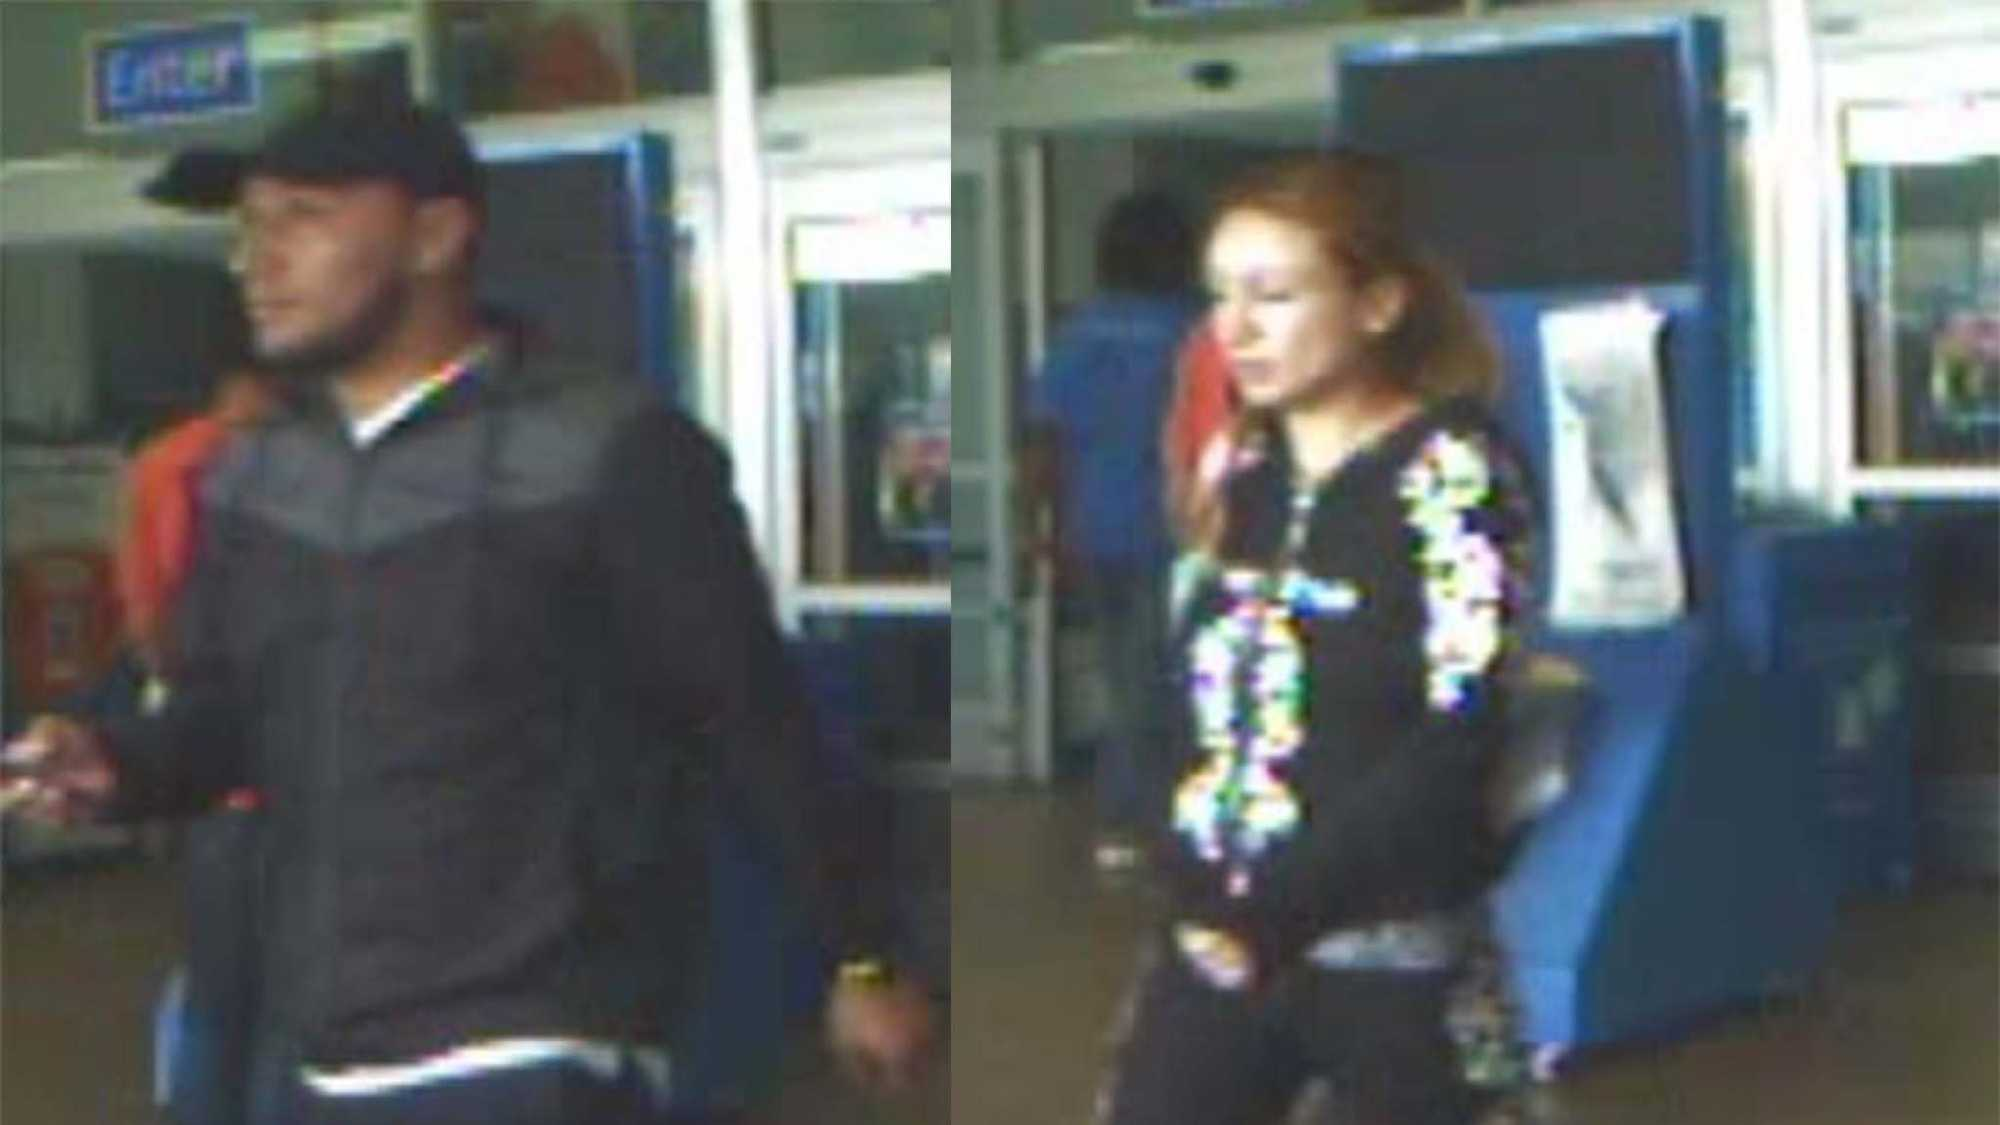 Authorities in Tuscaloosa are looking for a pair of thieves who robbed a large amount of money from a woman Saturday.